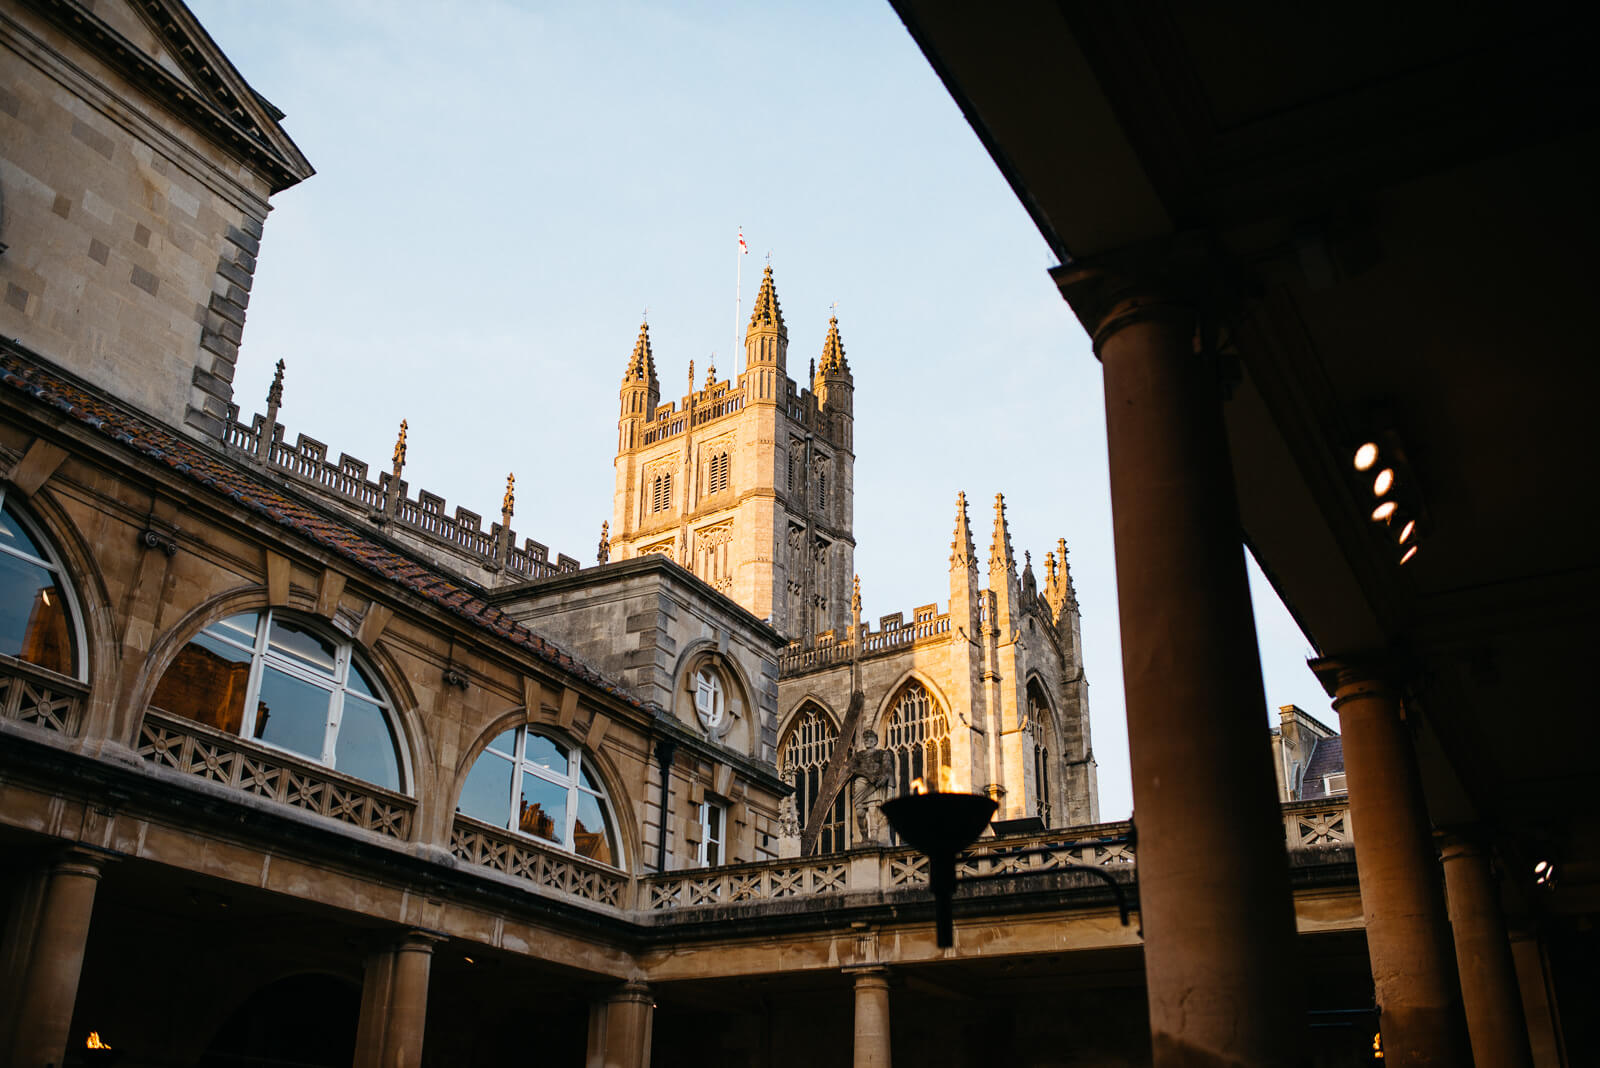 Bath abbey as seen from the Roman Baths